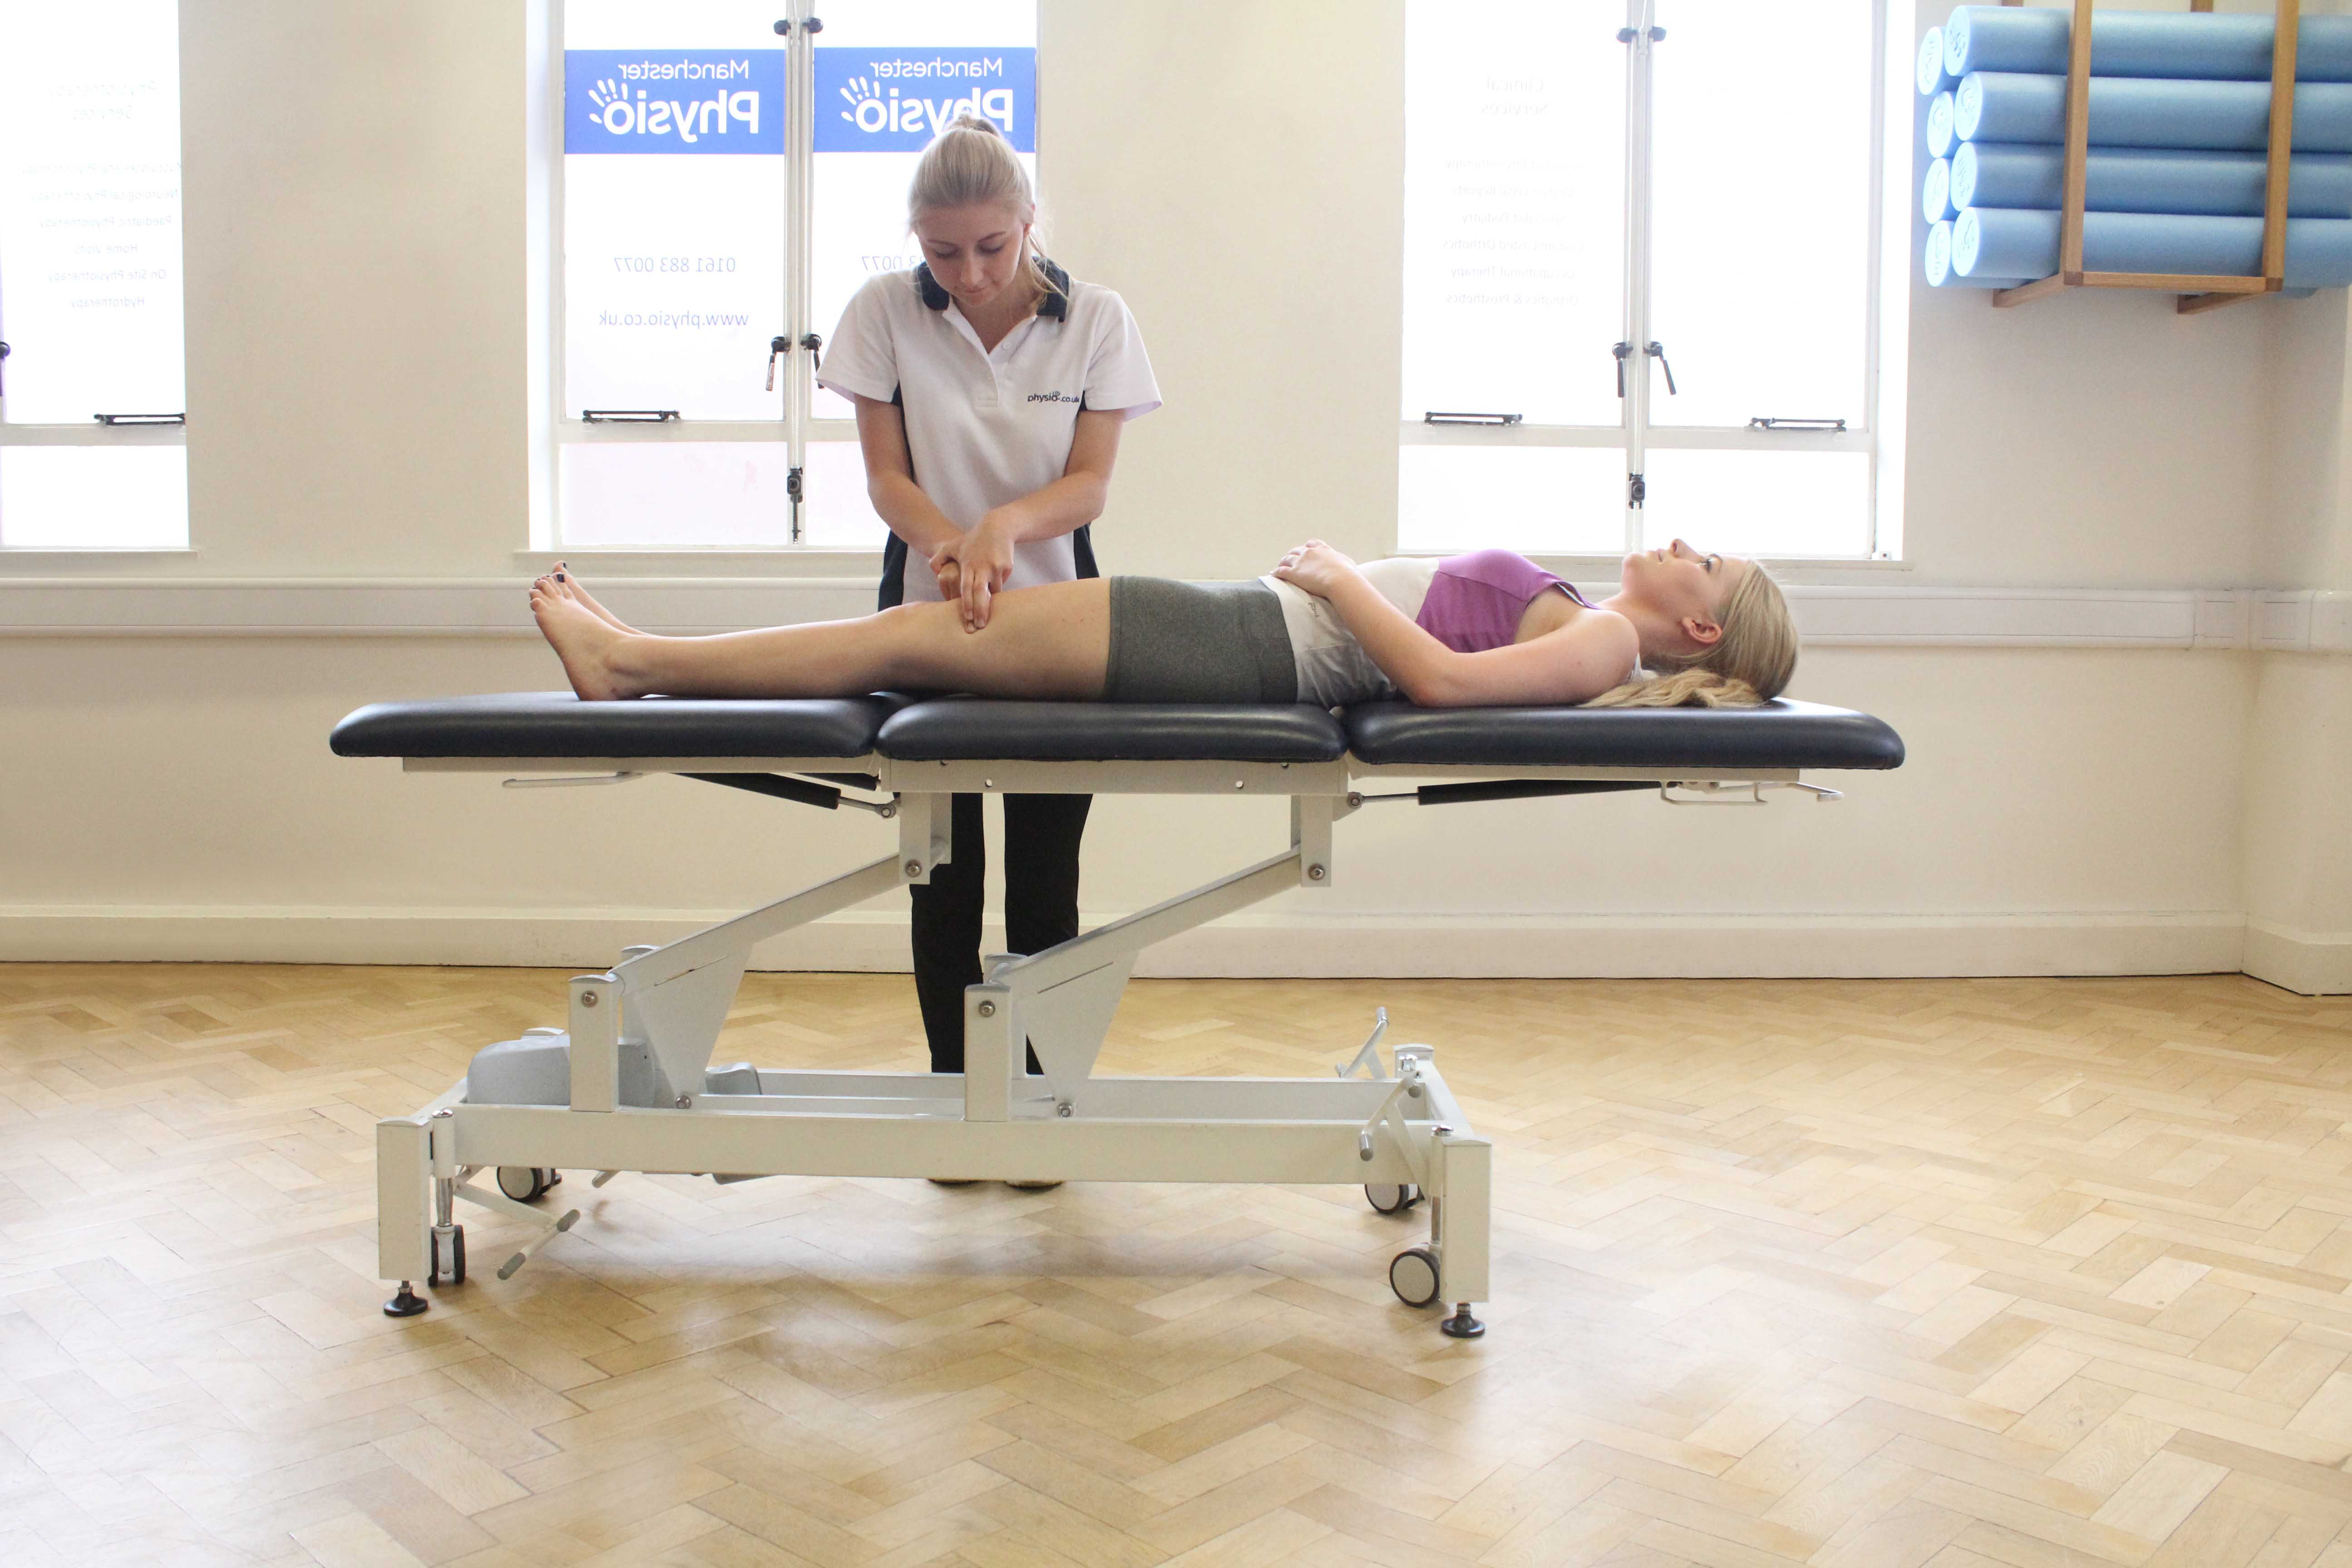 Hacking percussion massage of the quadricep muscles by a specialist MSK therapist